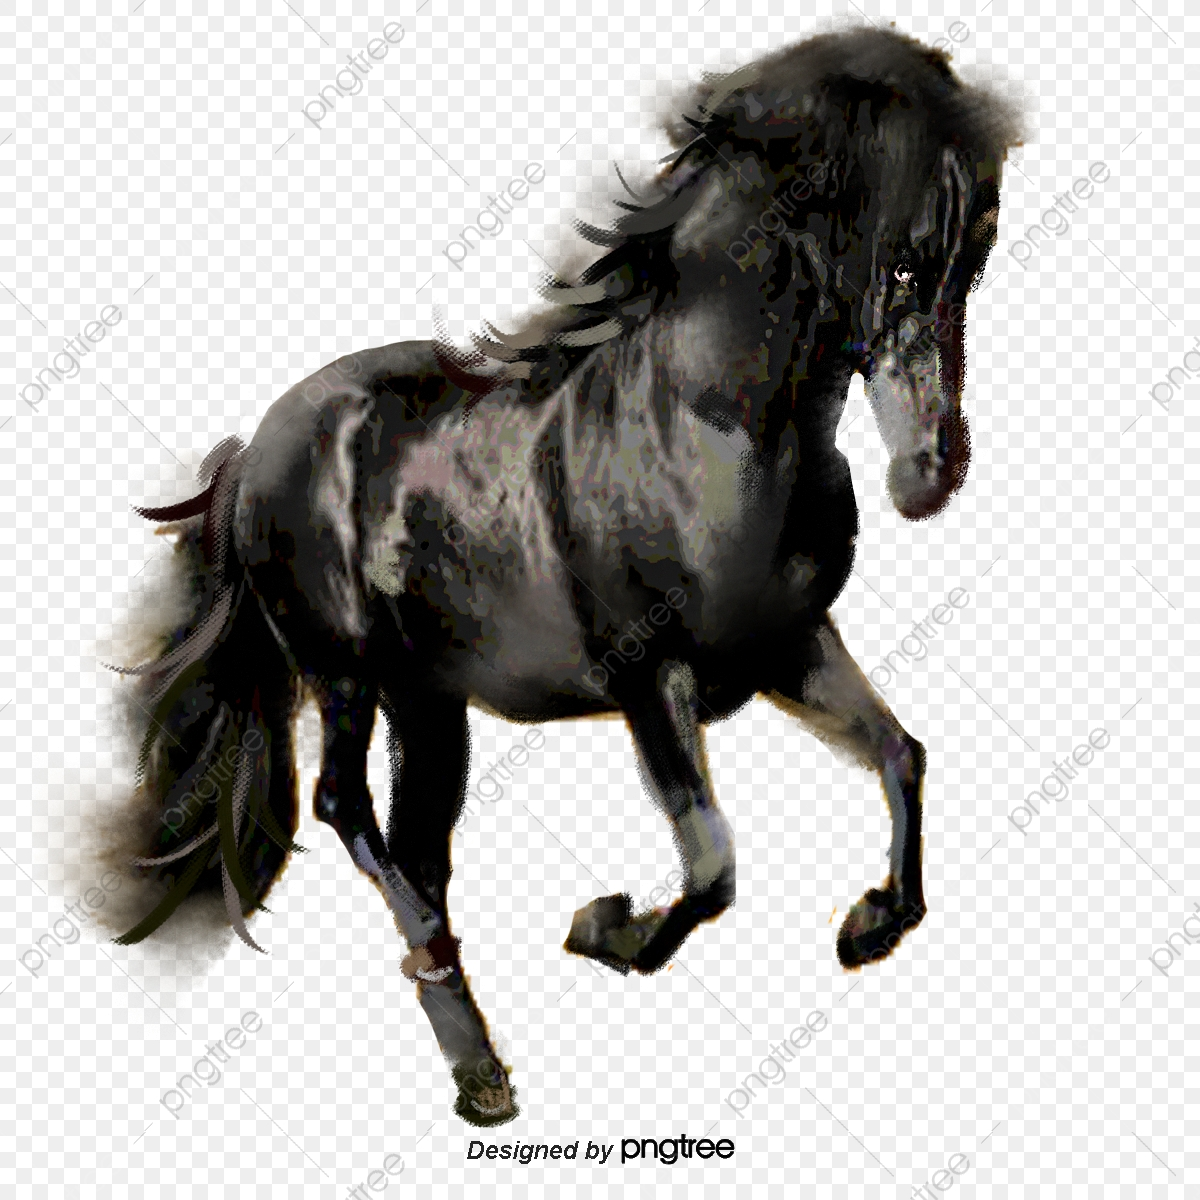 Black Horse Hand Painted Illustration Elements Horse Running Hand Painted Png Transparent Clipart Image And Psd File For Free Download